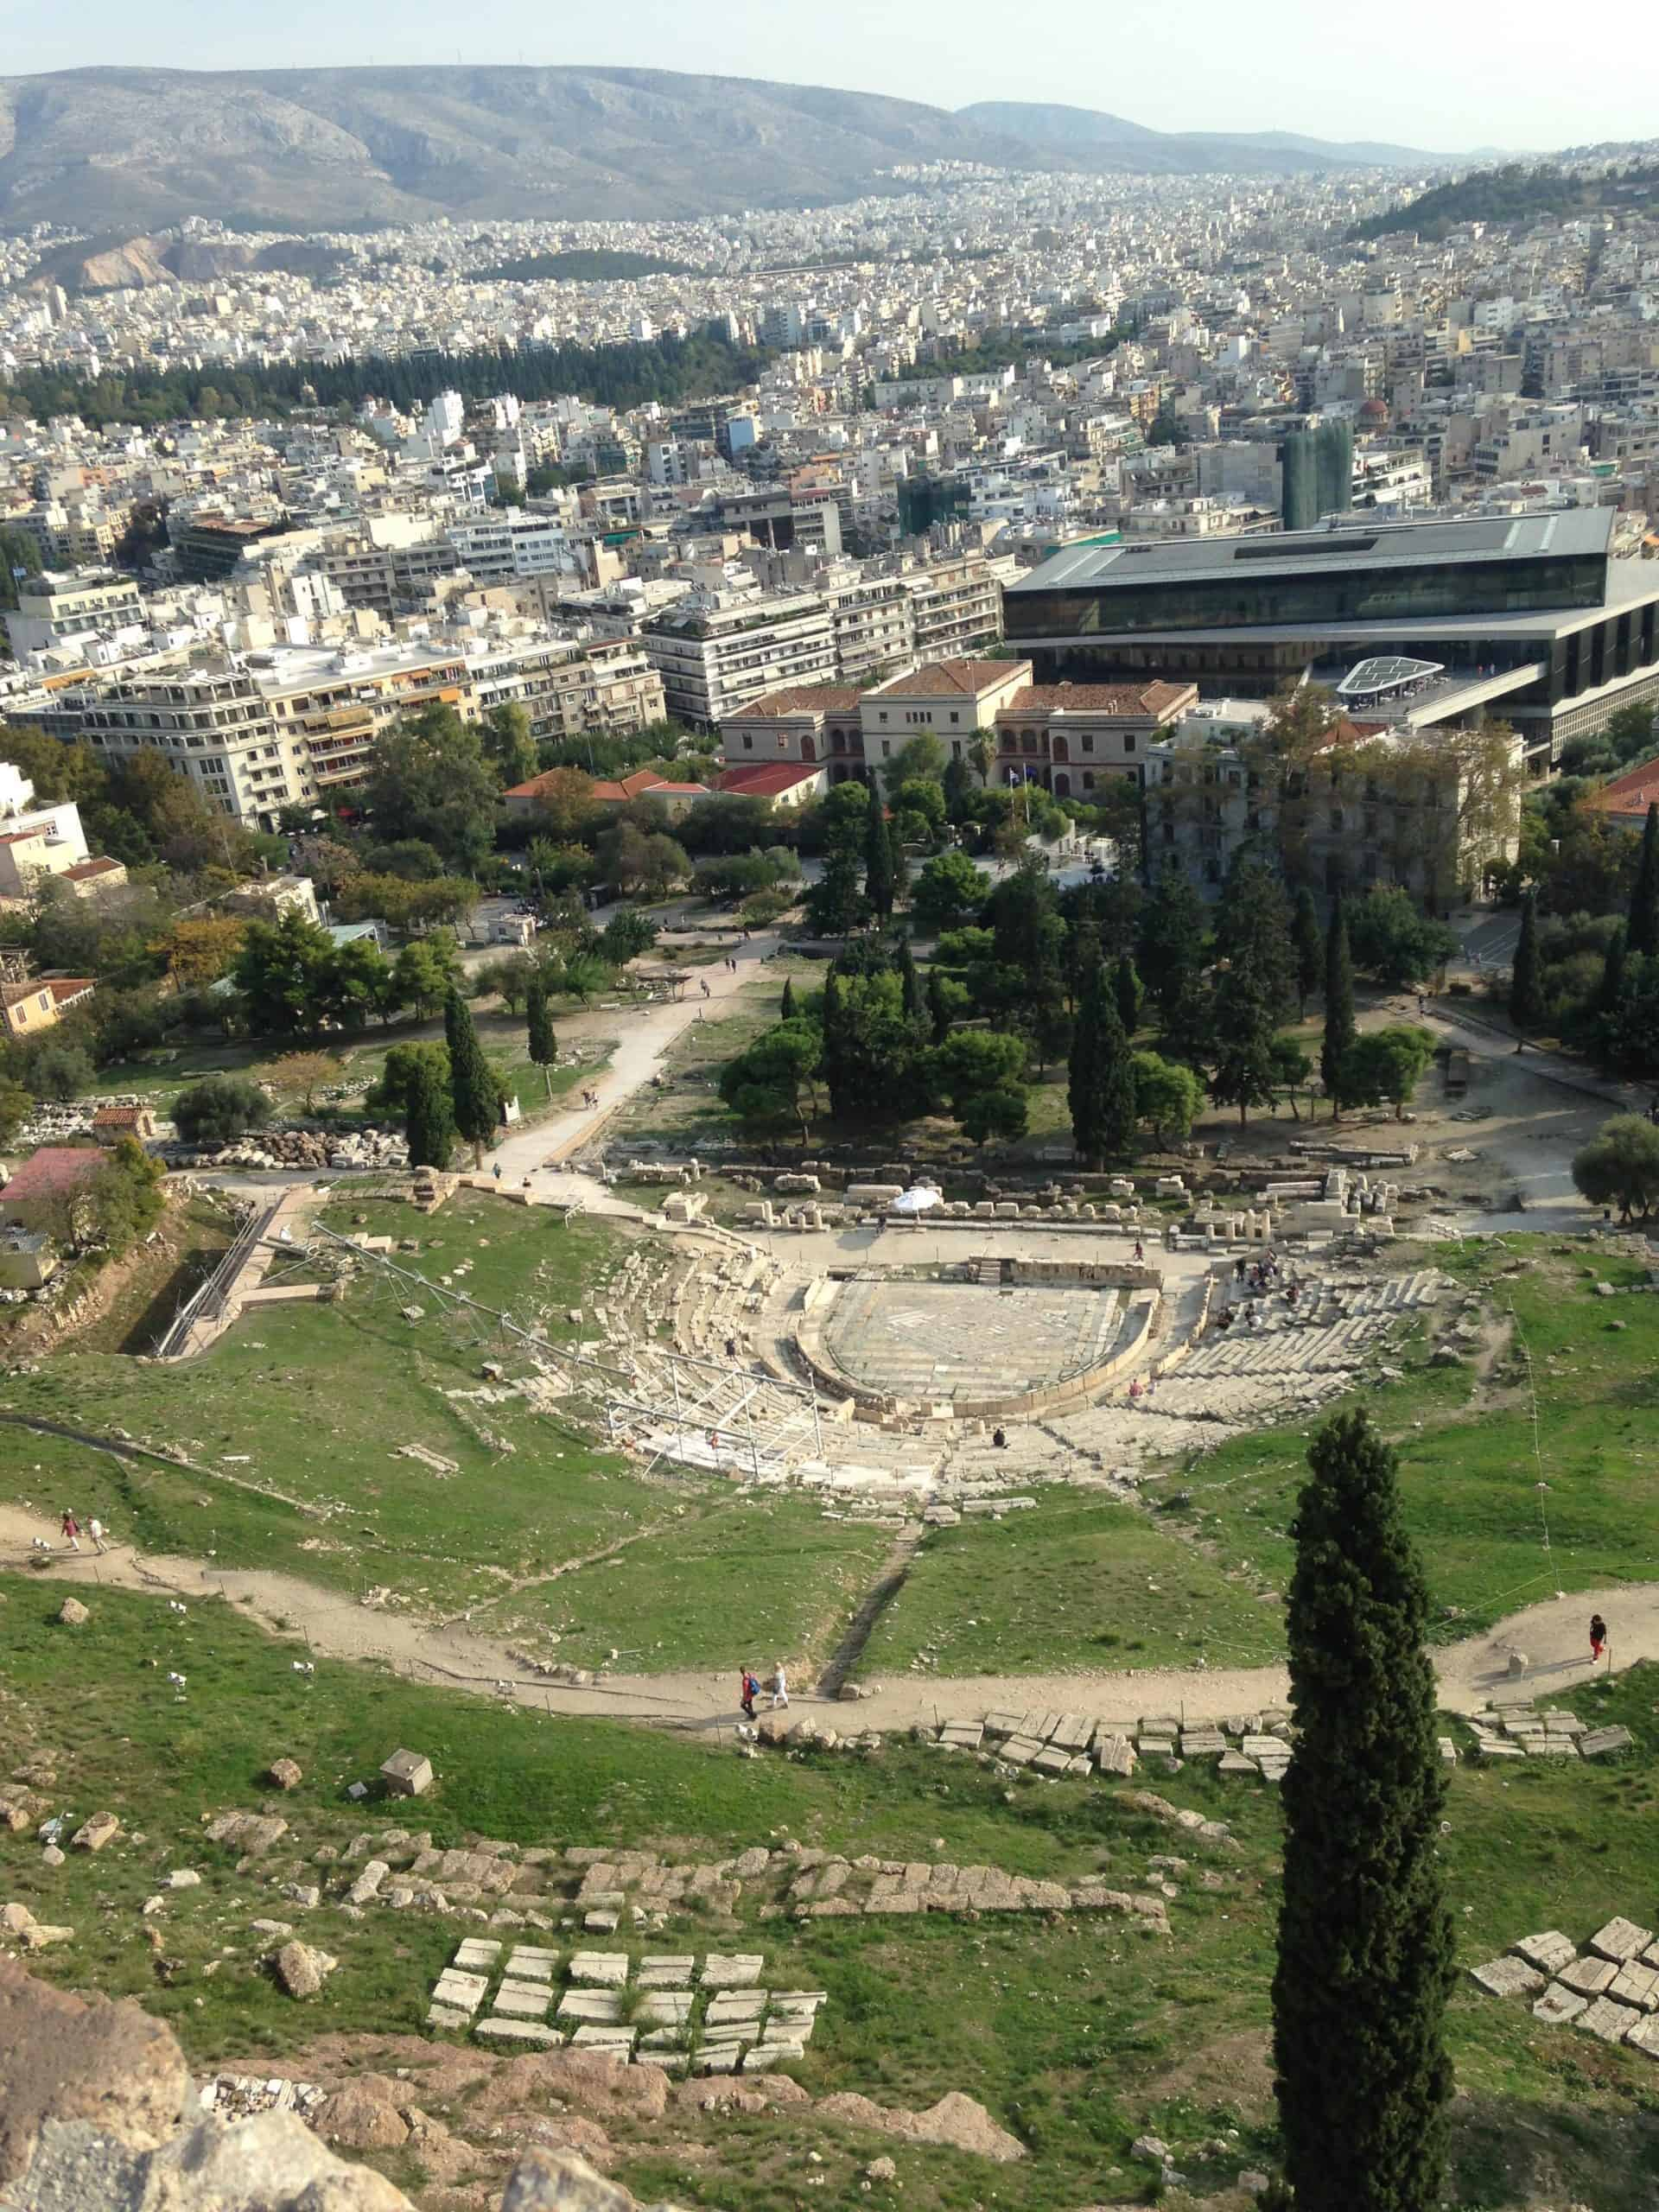 Visiting the Acropolis